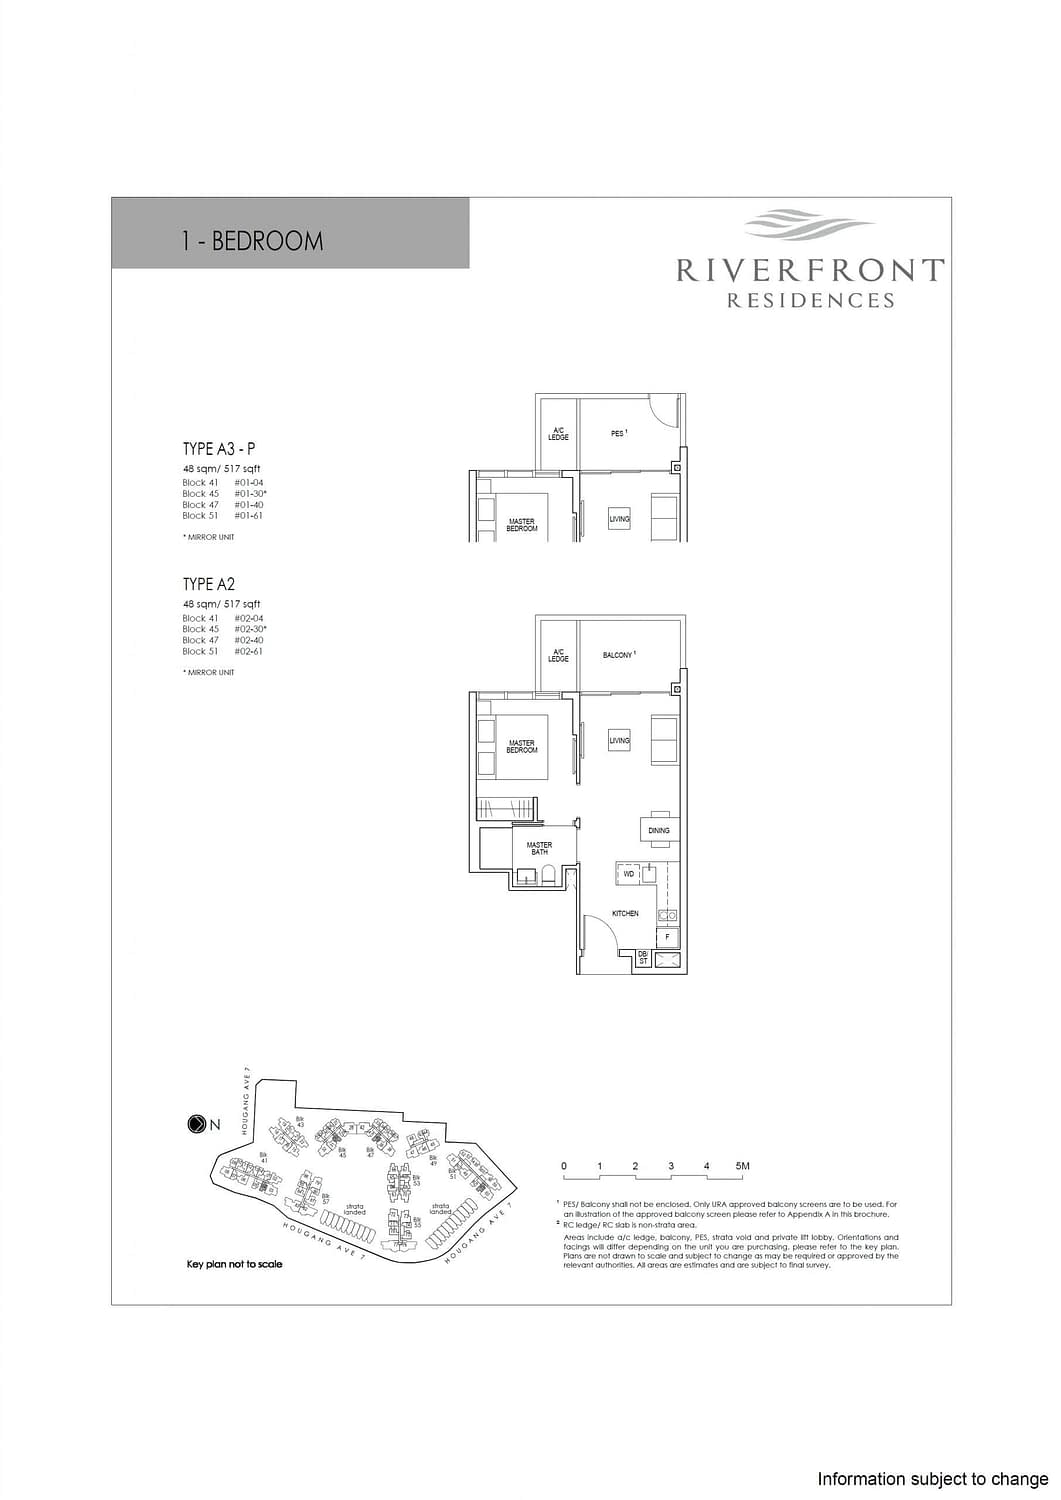 Riverfront Residences Riverfront Residences Floorplan A2 scaled